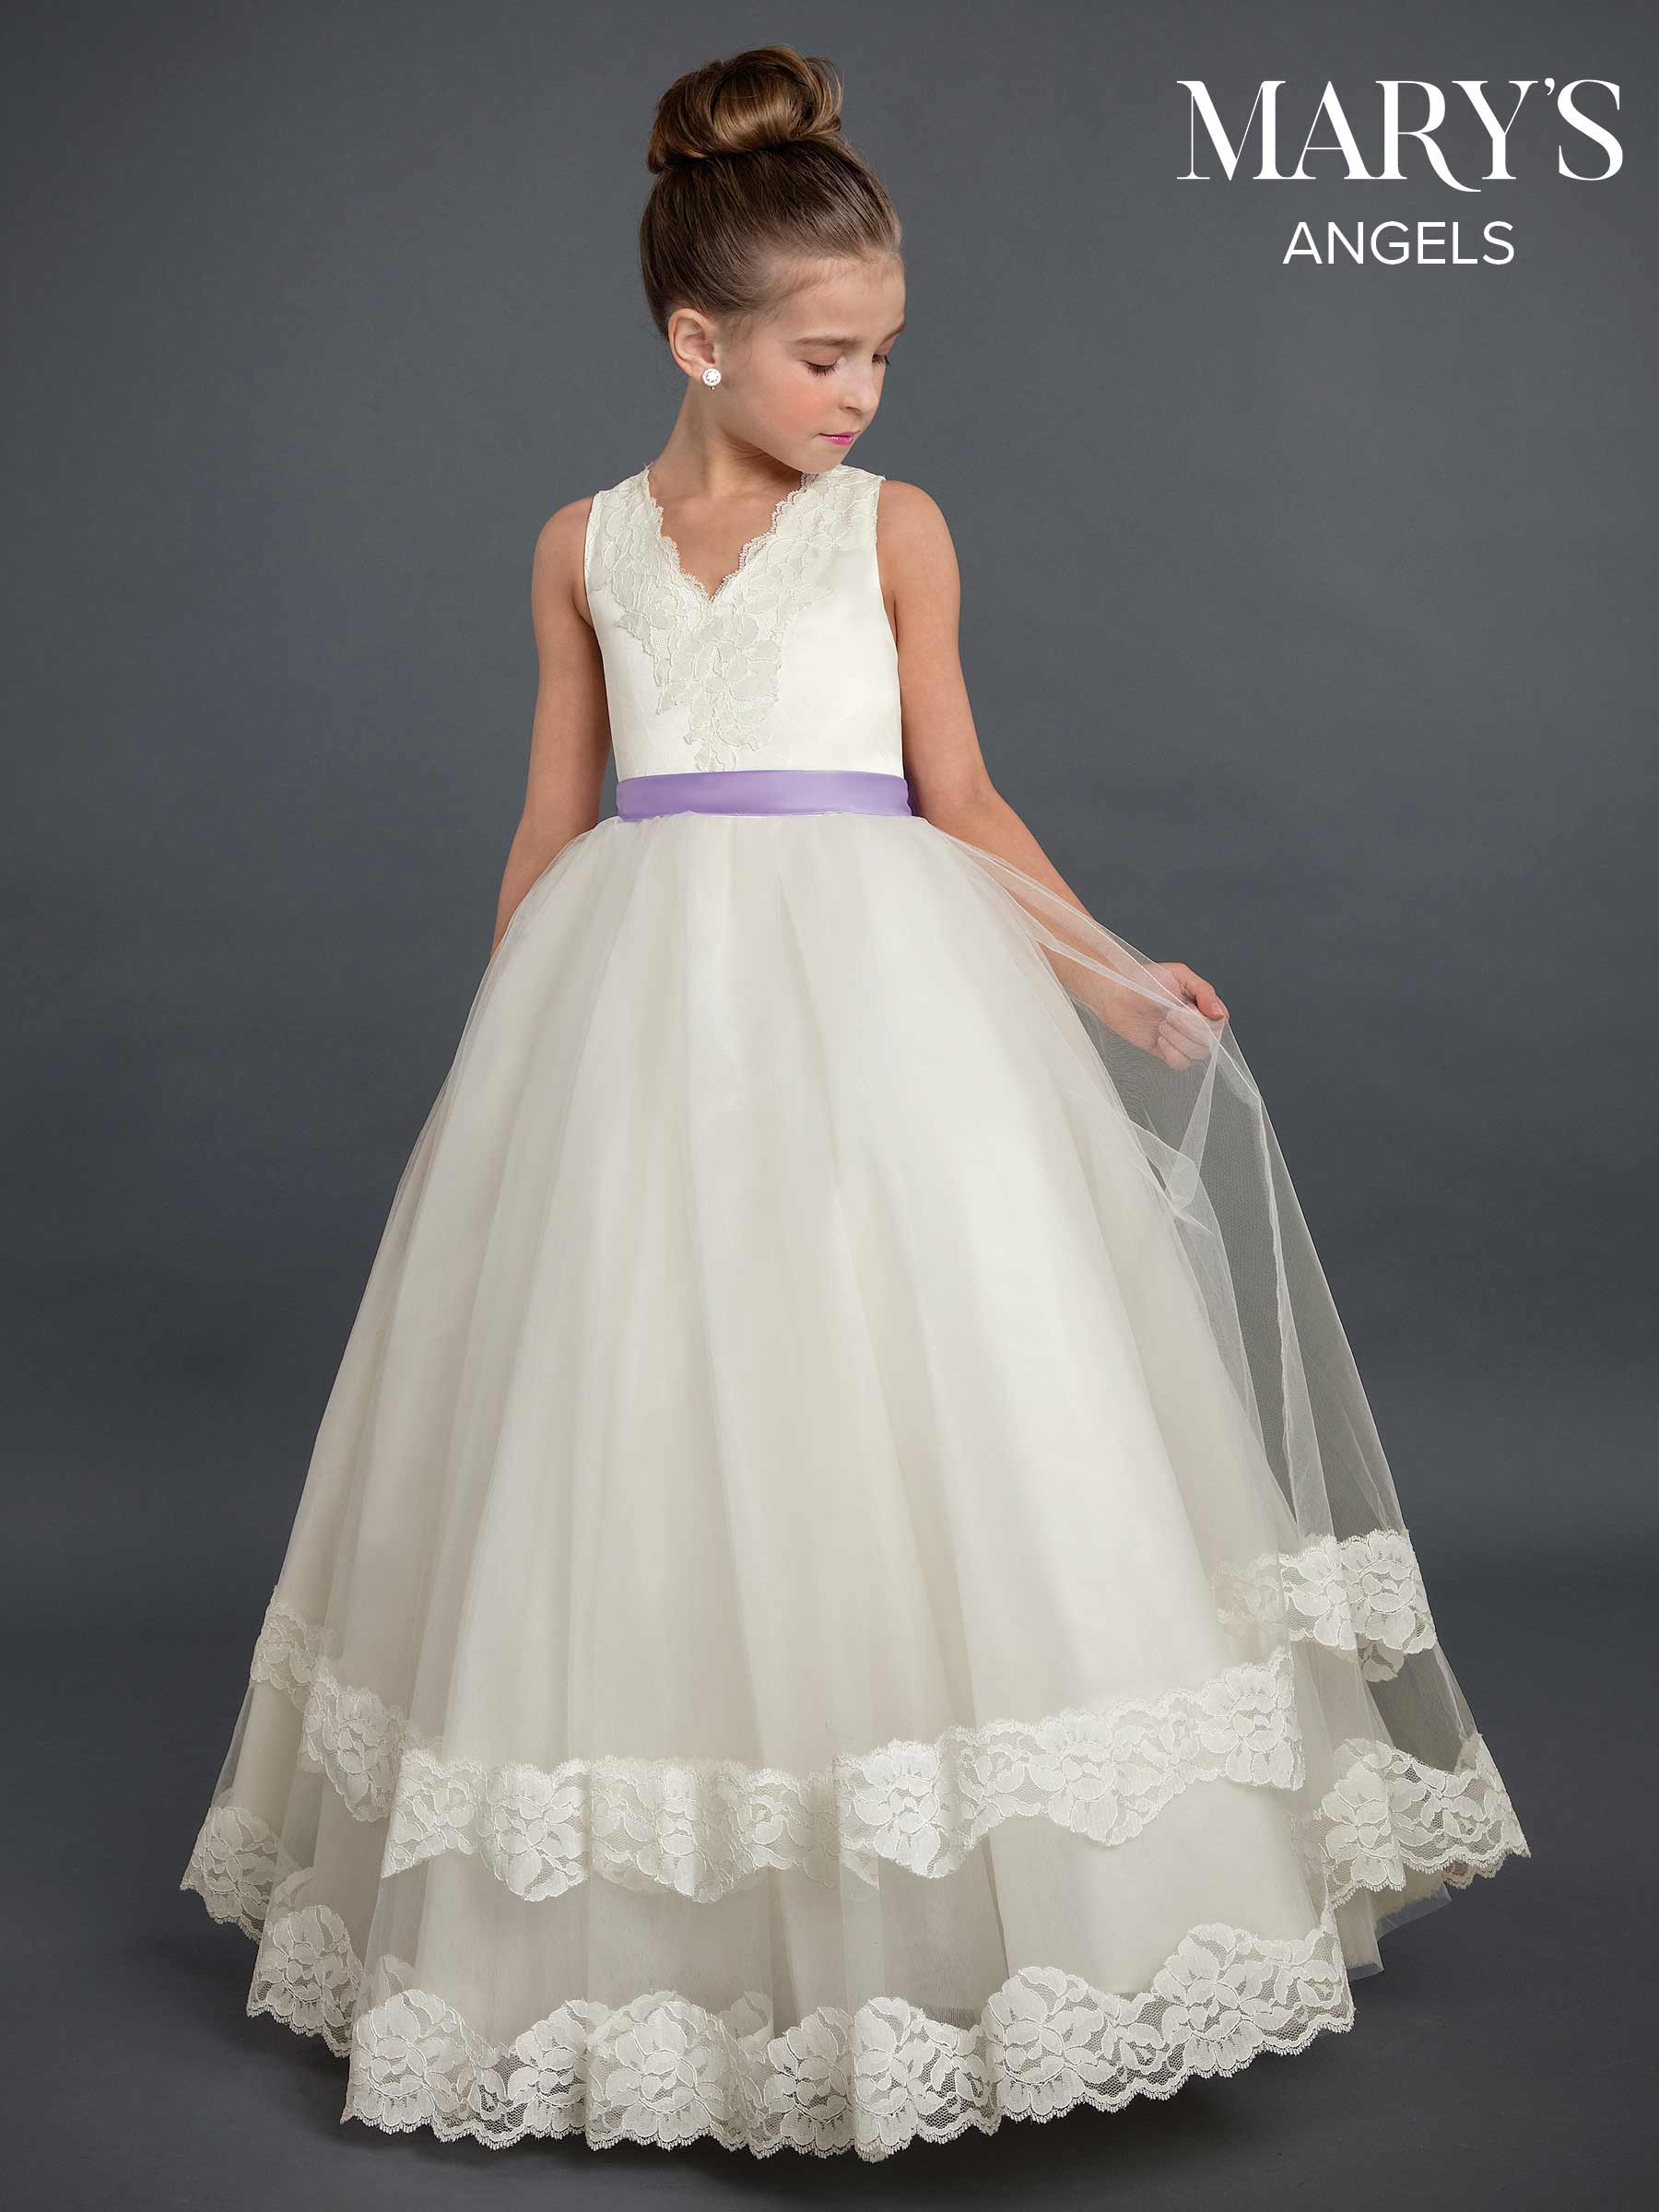 Angel Flower Girl Dresses | Mary's Angels | Style - MB9019